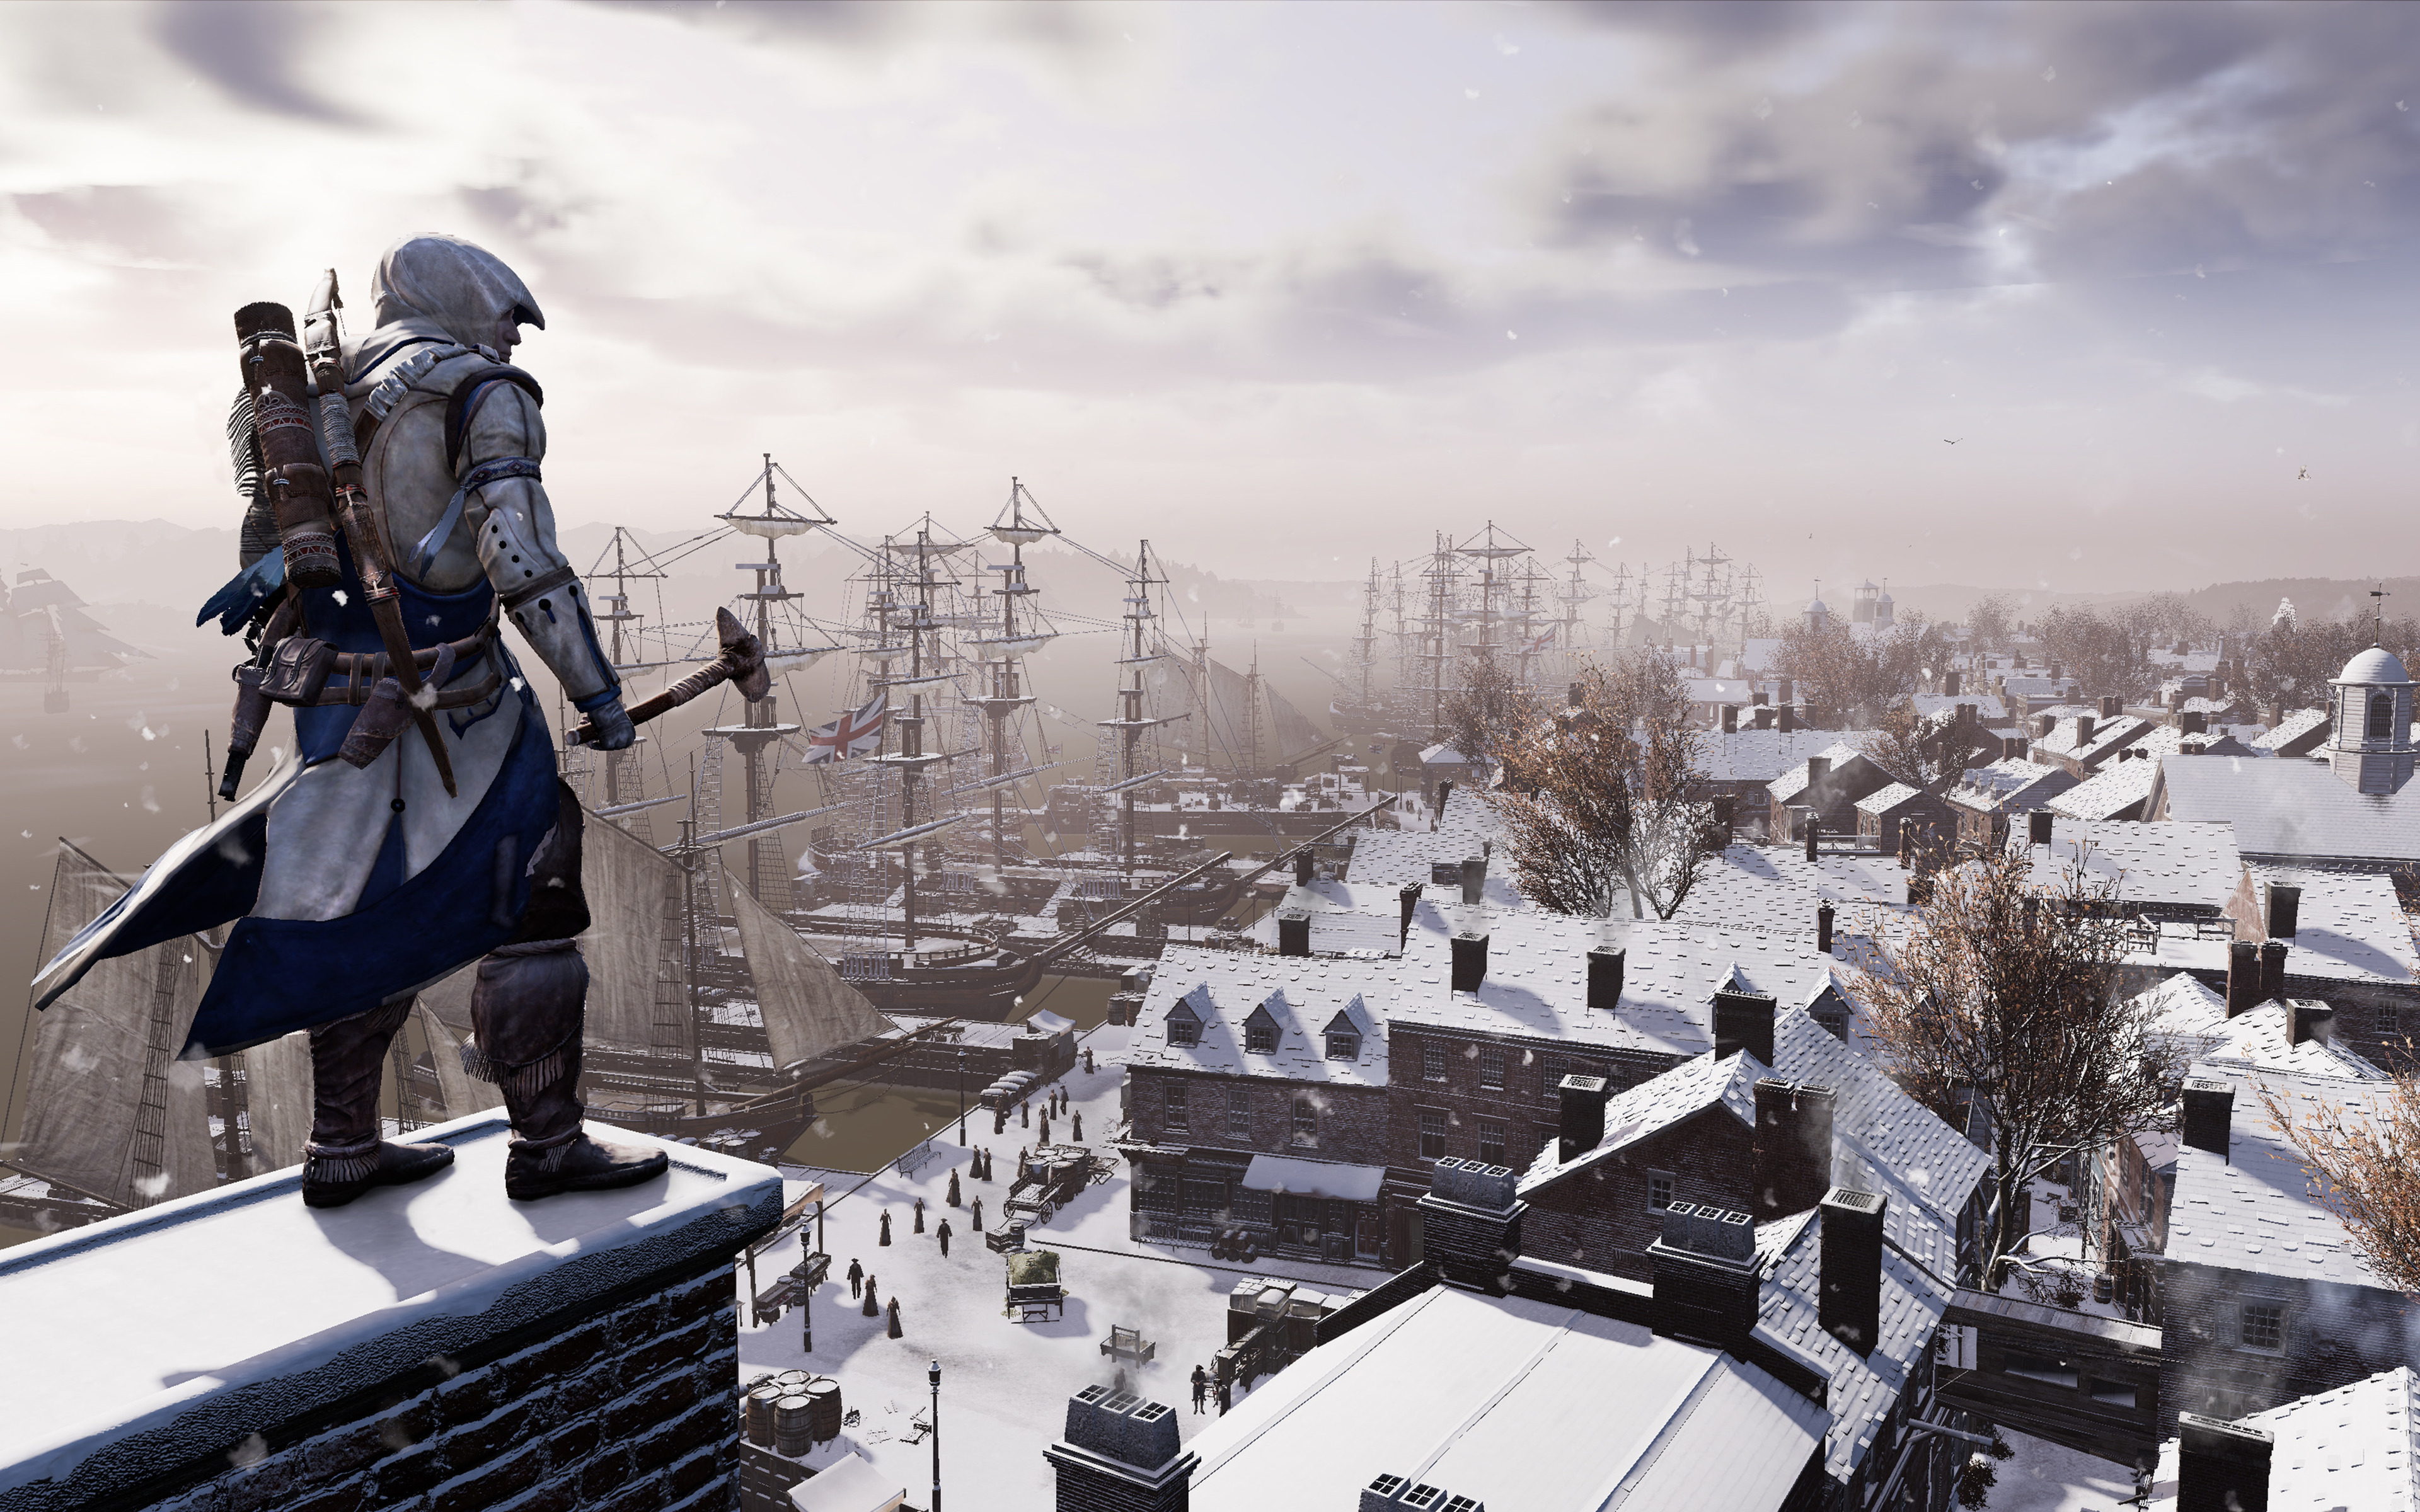 przeci assassins creed iii - HD 3840×2400